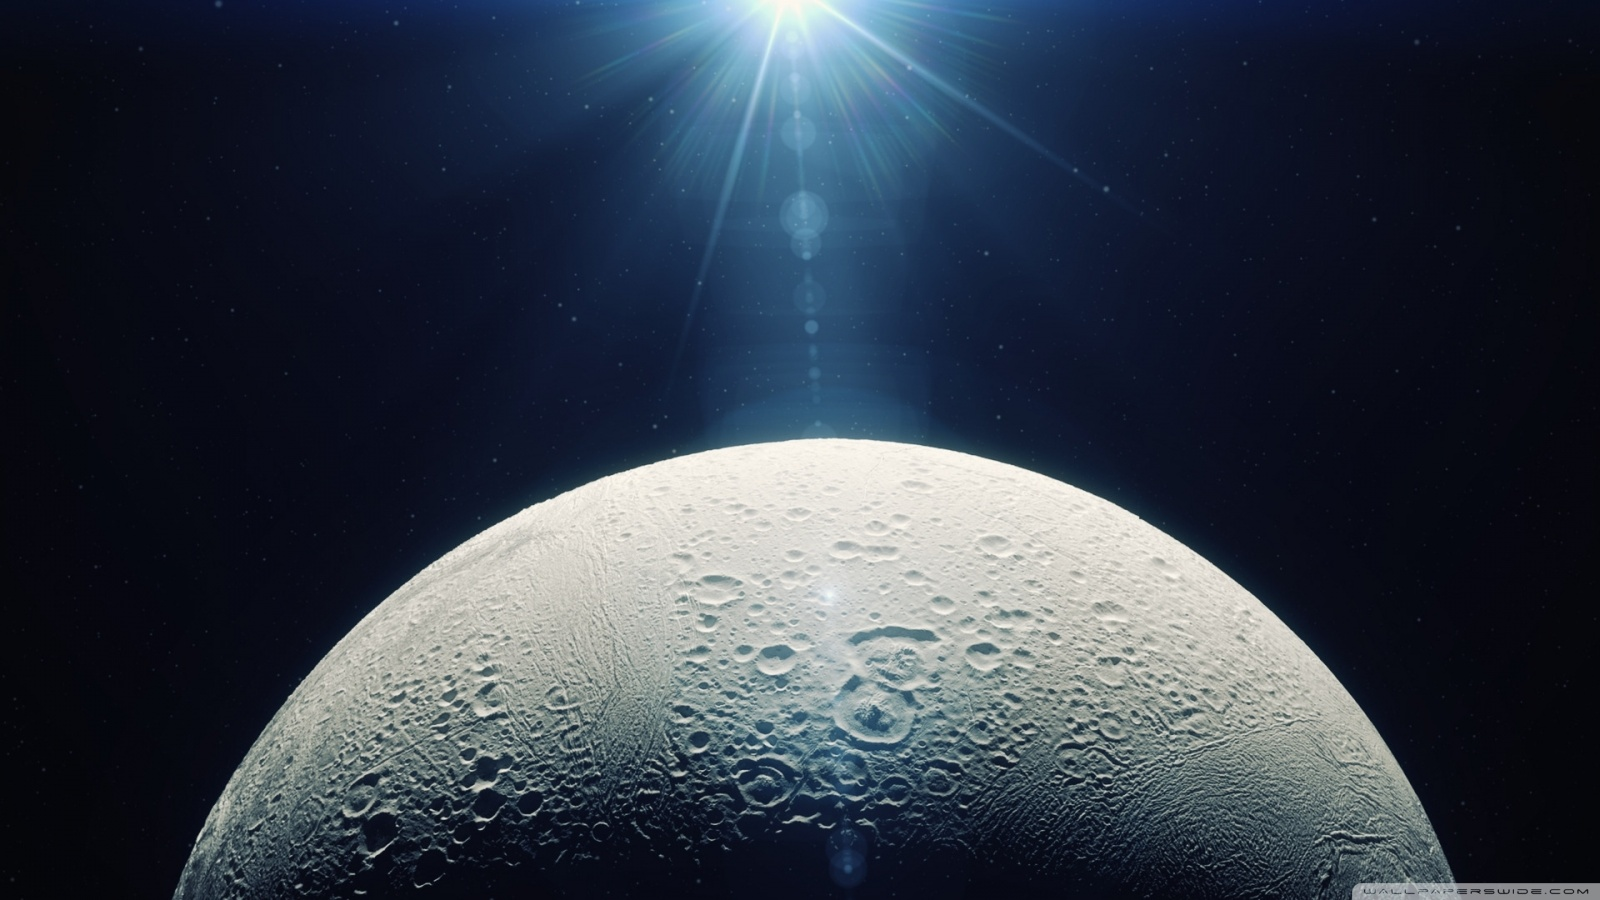 Space Moon 49765